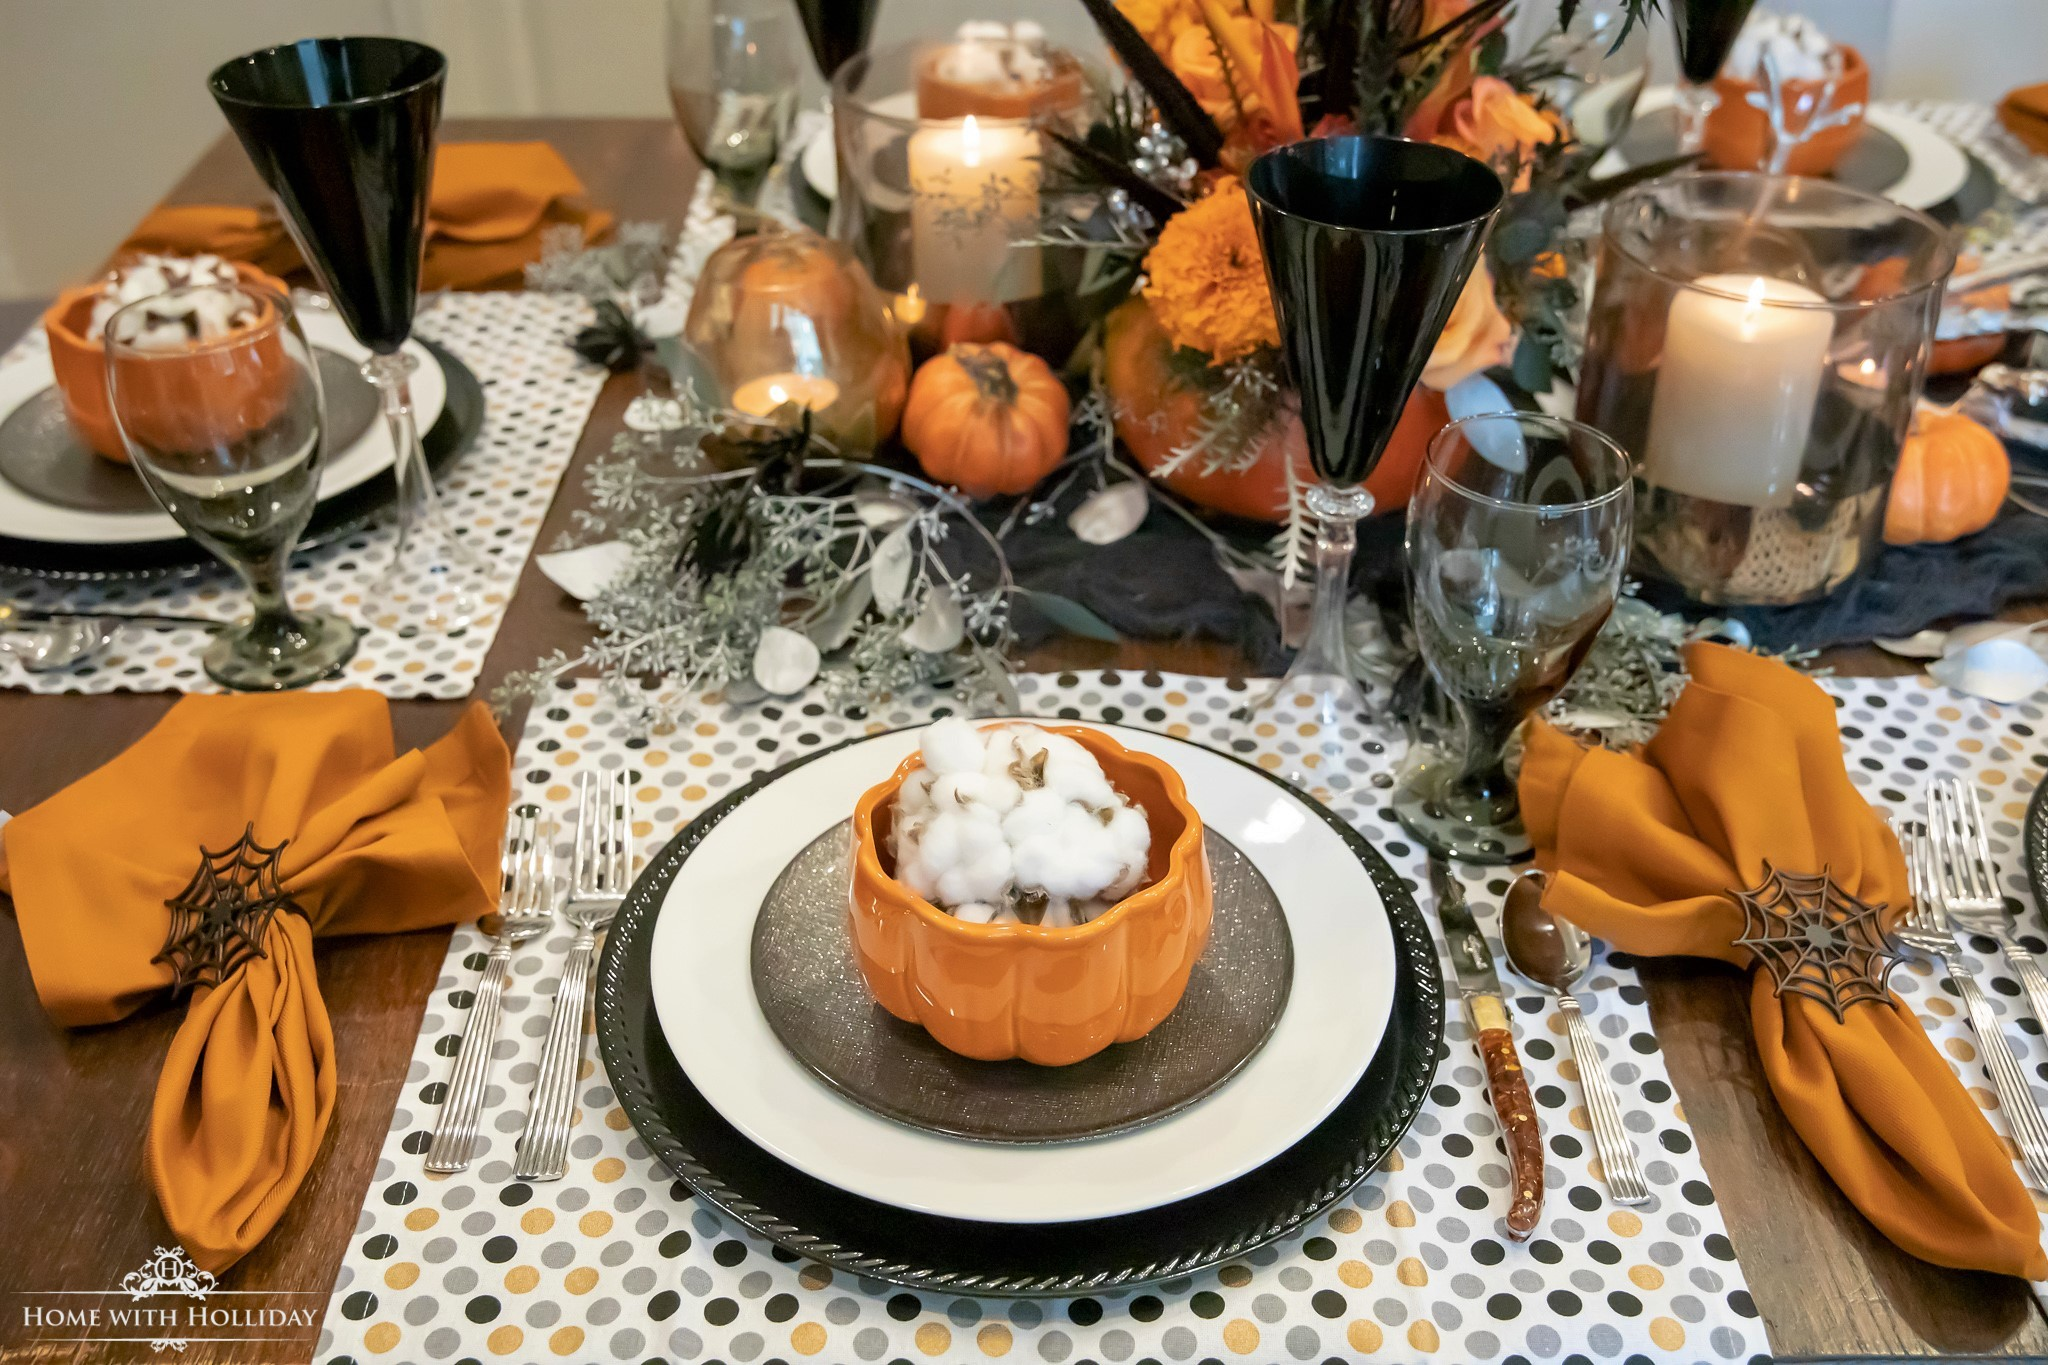 Place Setting for an Elegant Halloween Table Setting with Pumpkins - Home with Holliday